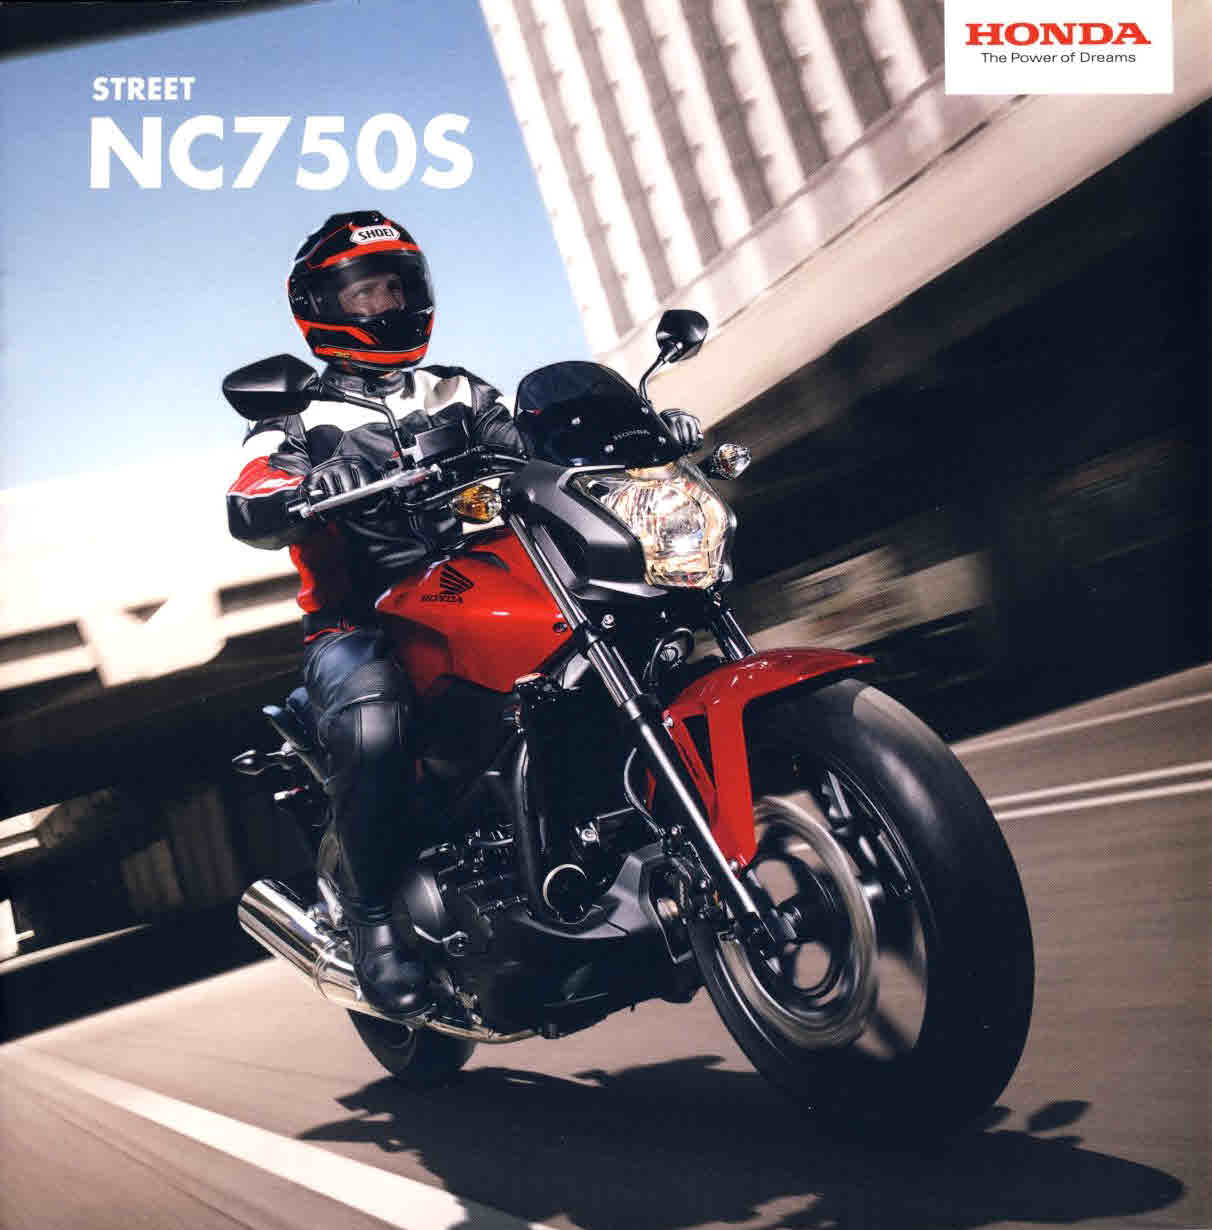 HONDA Street NC7505 12 page brochure 2014 with fold-out specs ref63 S2-box4  Measure approx 21cm x 21cm. This is a pre-owned product in very good condition - please see full description and photo.